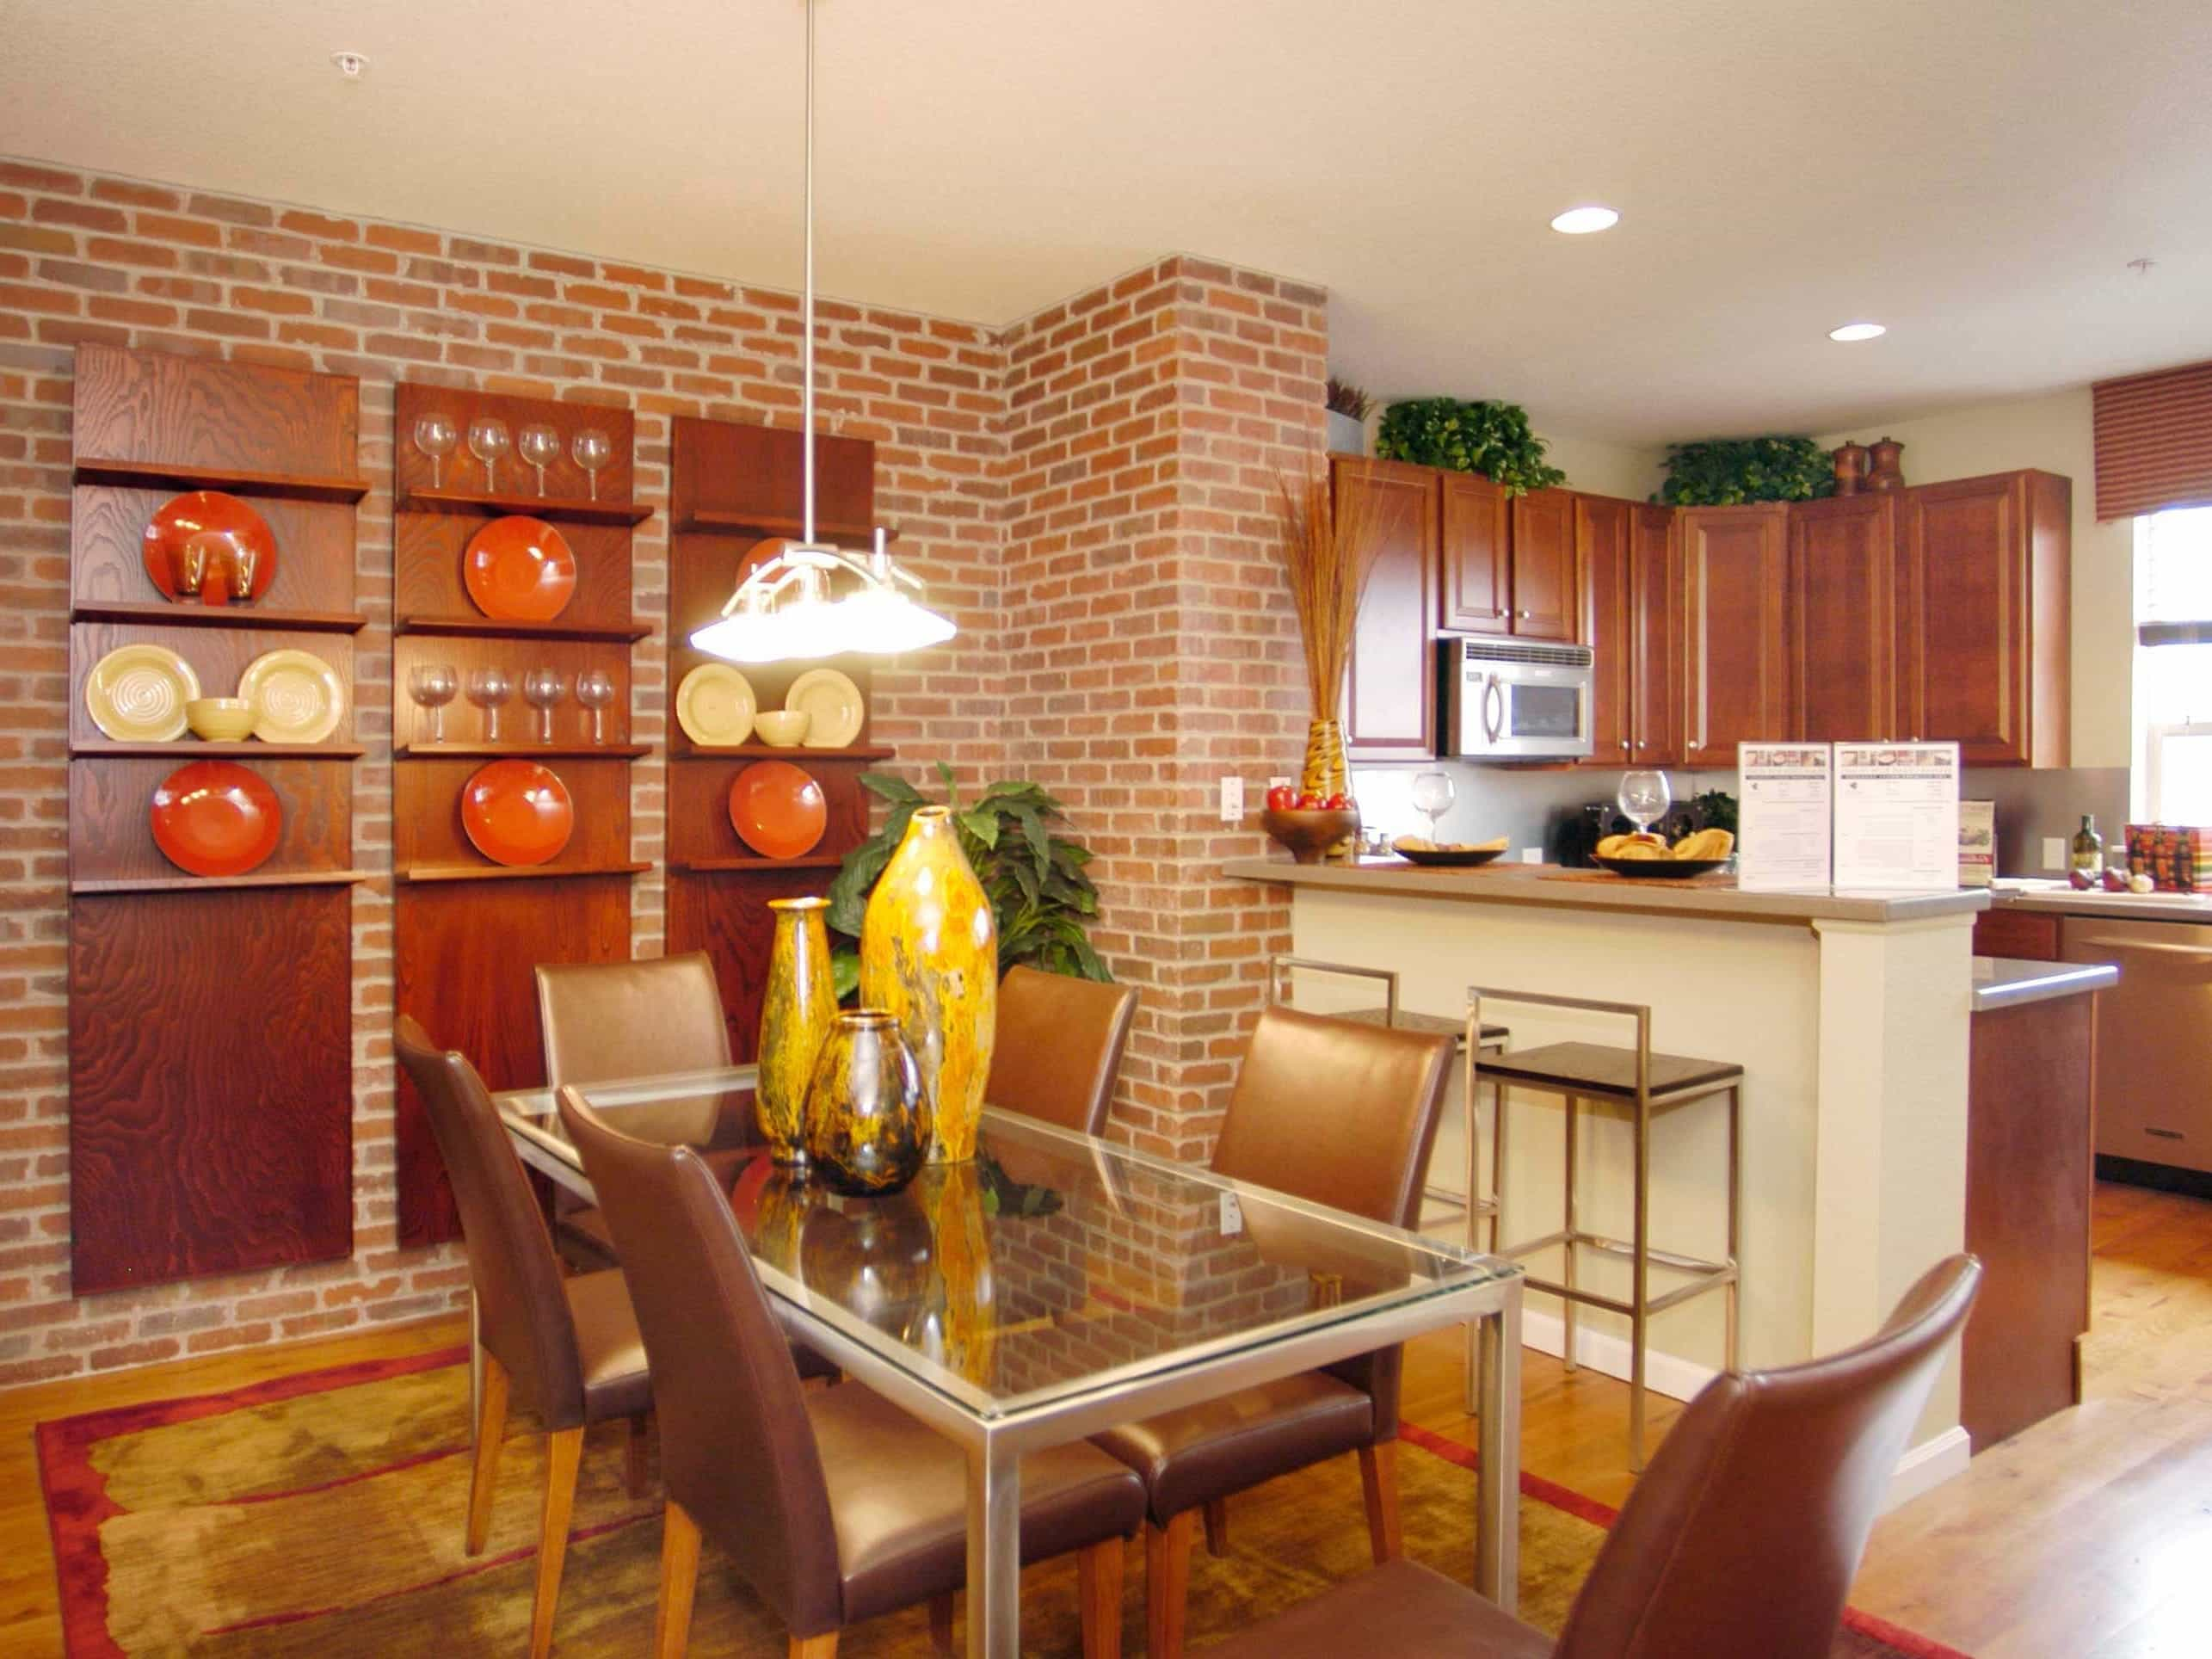 Eclectic Dining Room With Brick Accent Wall (Image 11 of 30)